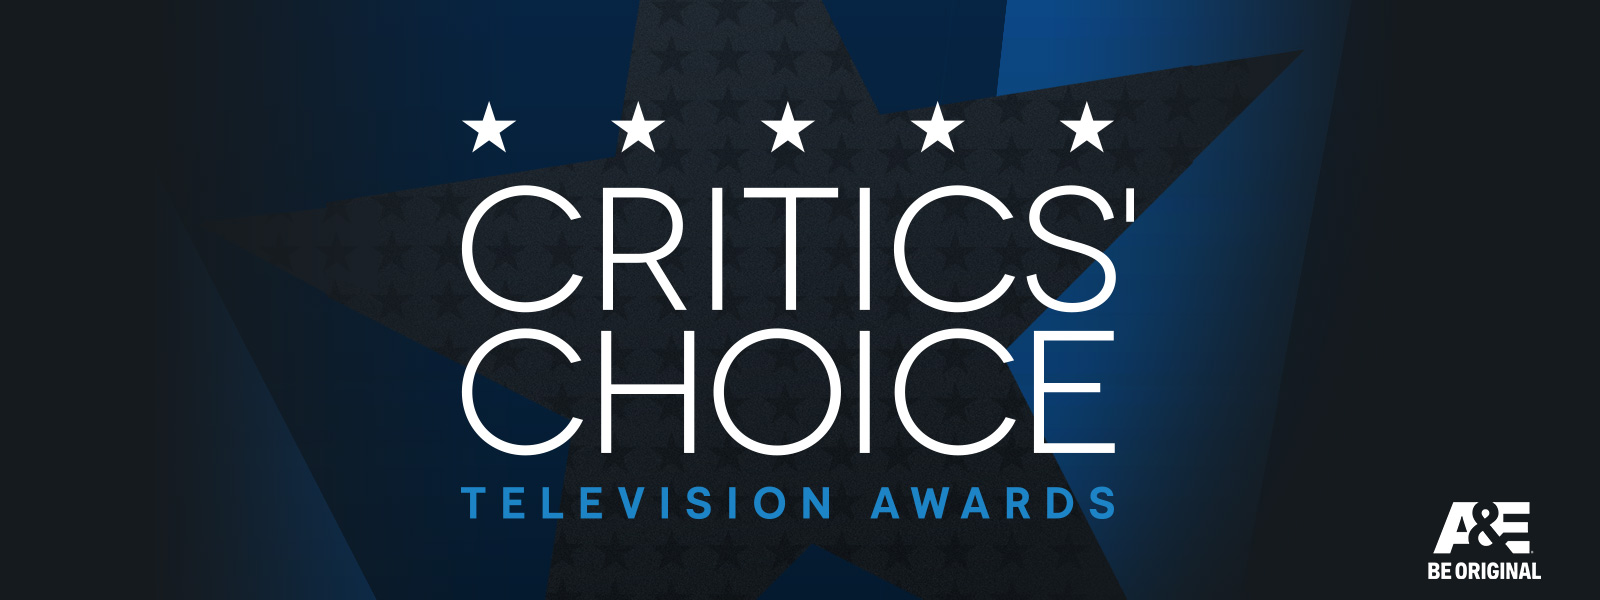 critics-choice-television-awards-logo-banner